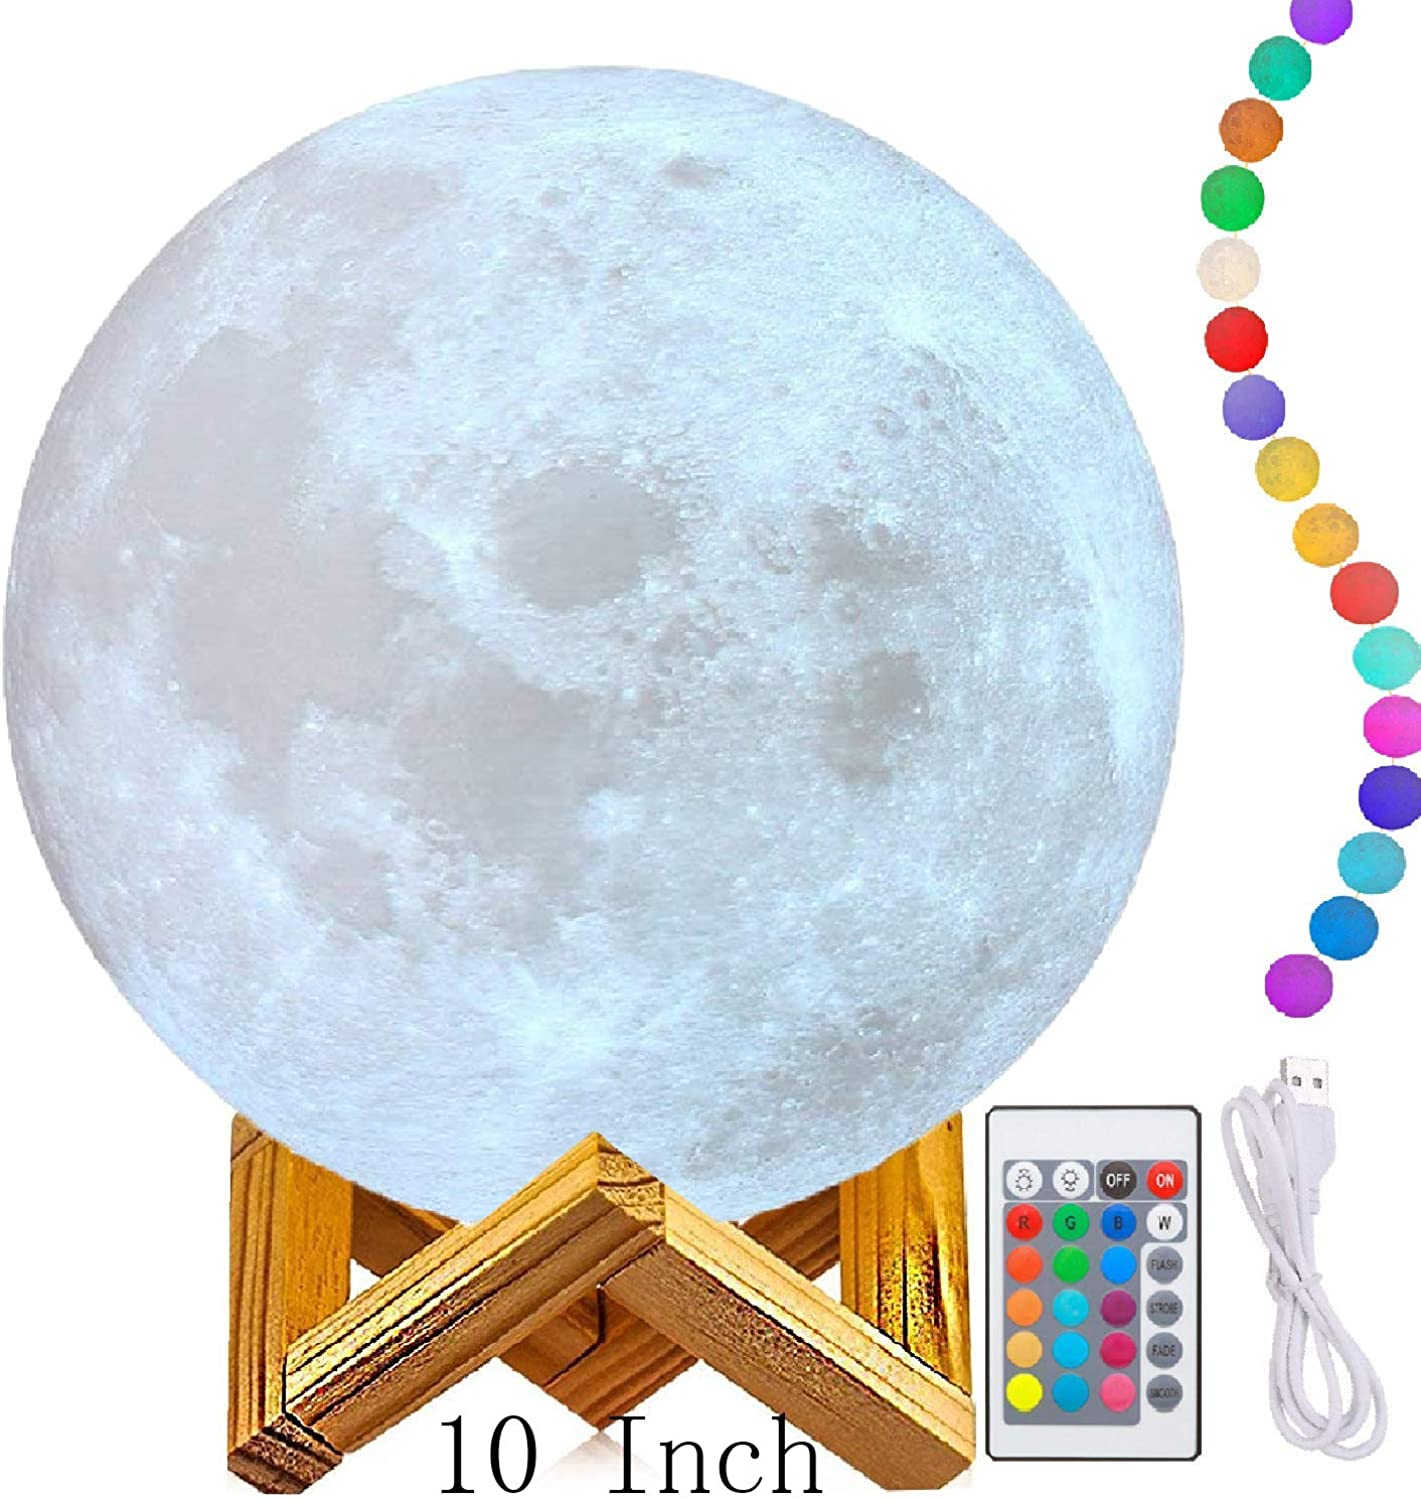 10  Big Moon Lamp, Moon Light Lamps(6 -11 ),3D Printing Moon Lamp with Stand,The 3D Moon Lamp with LED 16 colors, Touch Control and Remote Control.